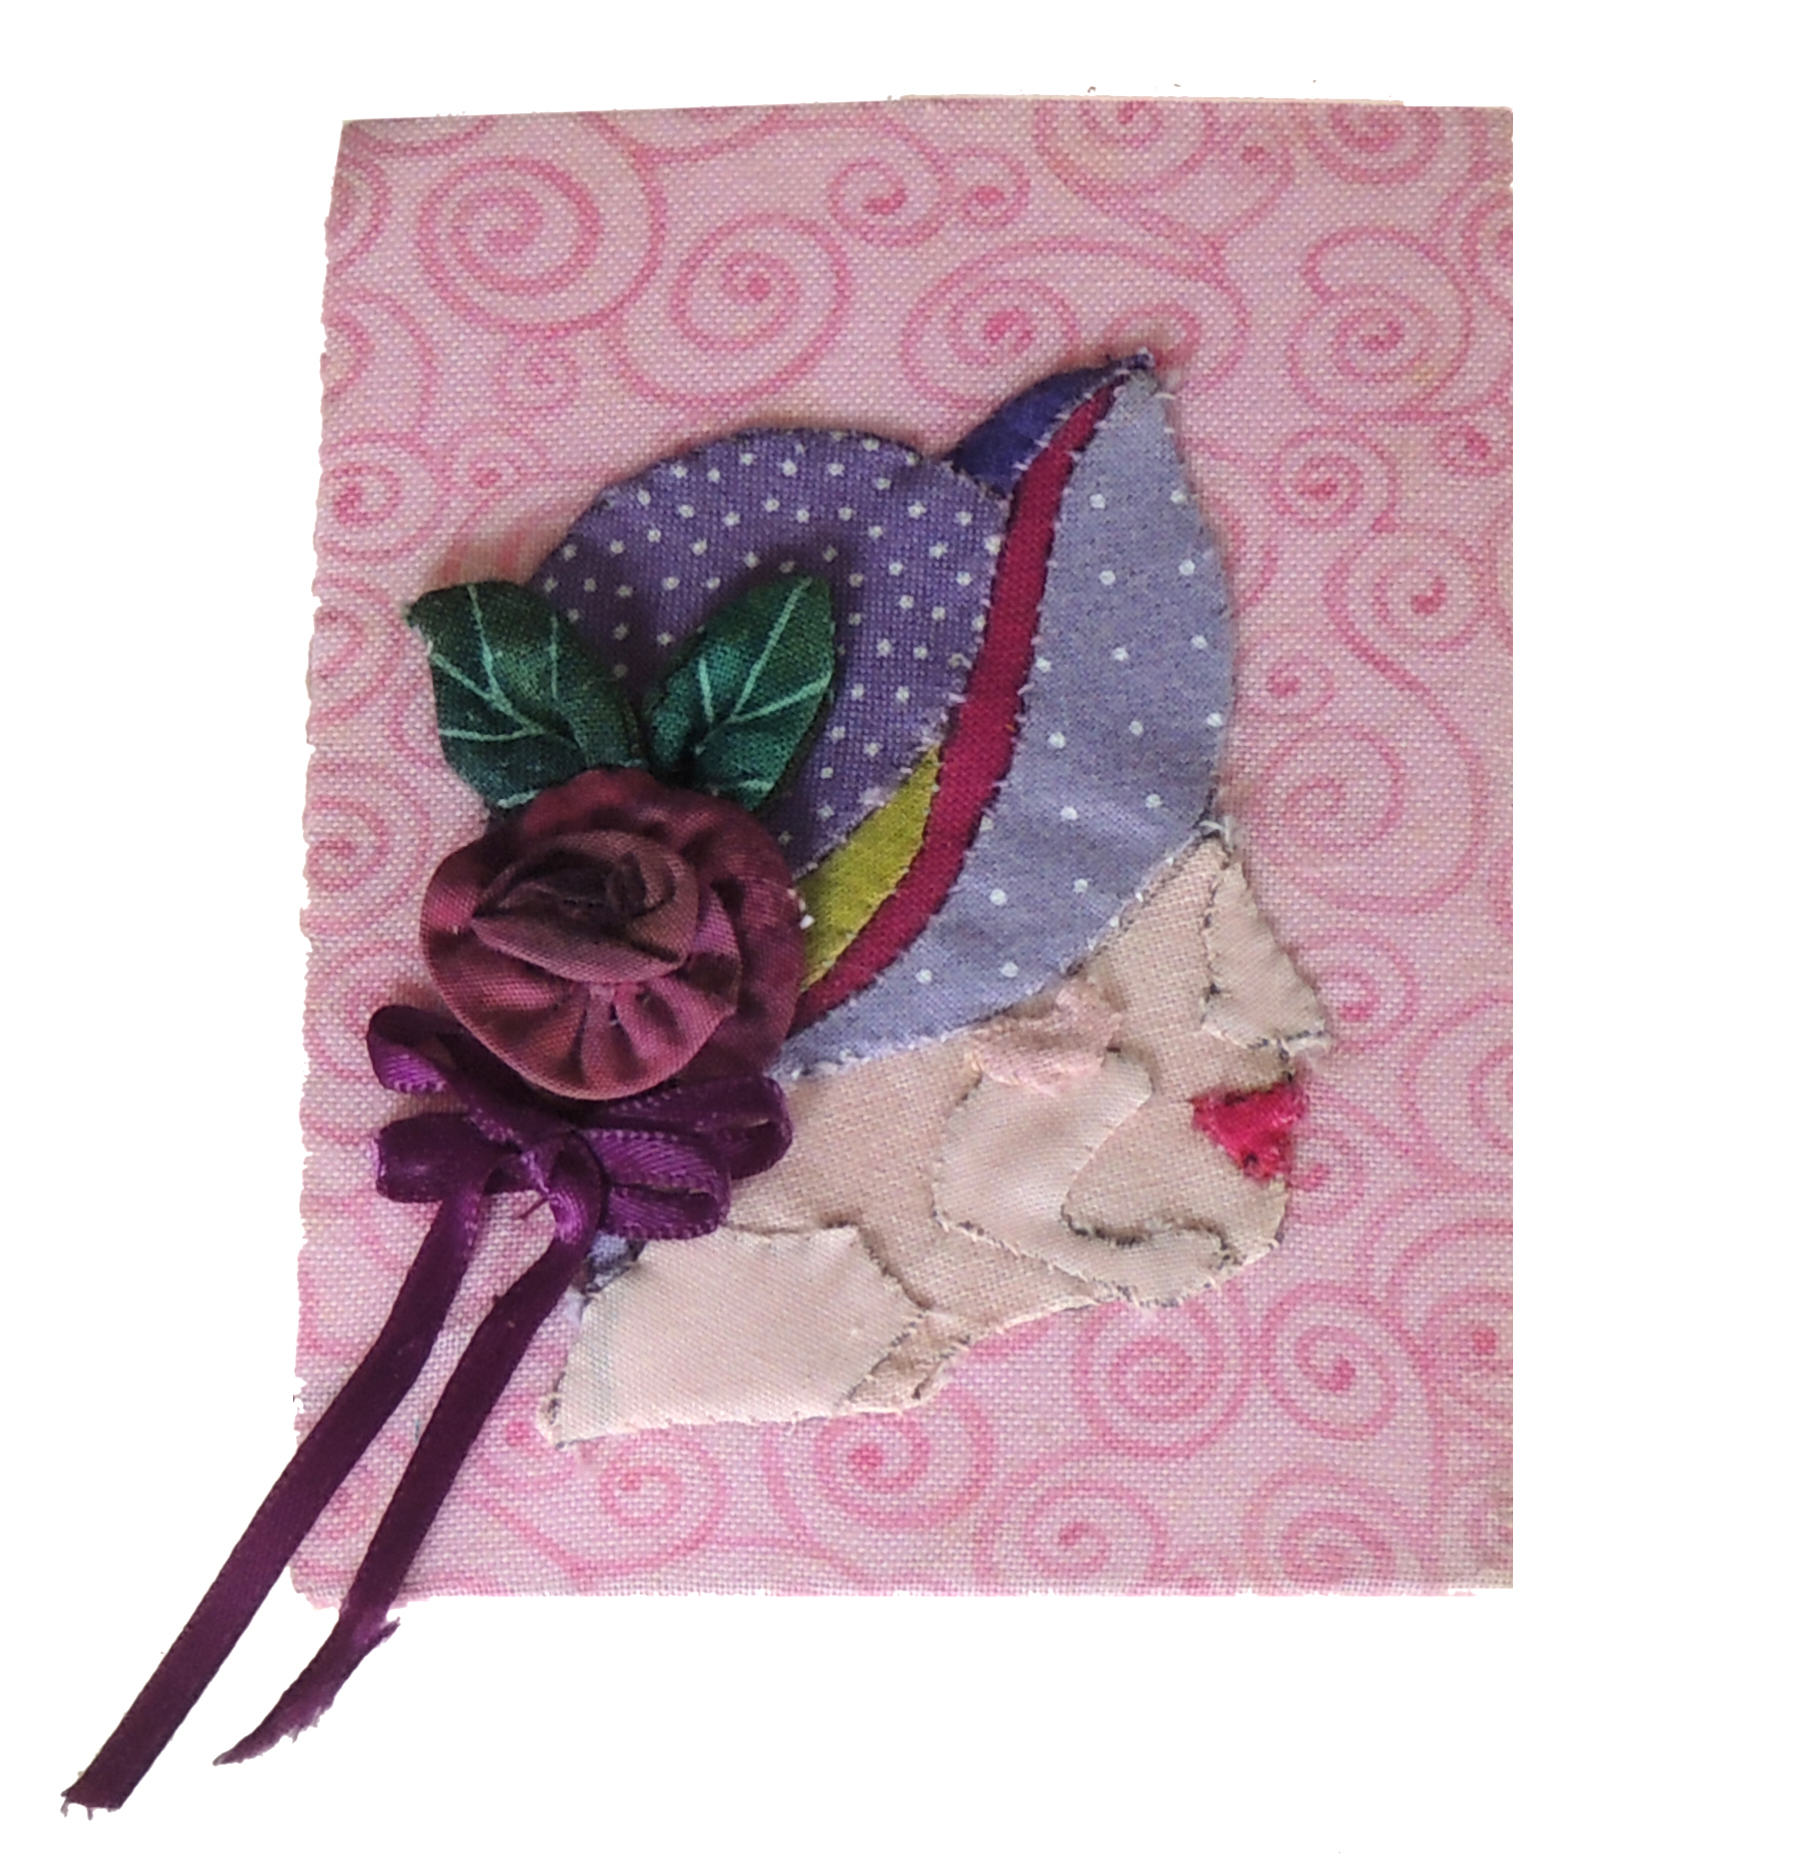 Marianne Rabb Britton | PURPLE HAT WITH FLOWER | Fabric & Embroidery | 4 x 3"